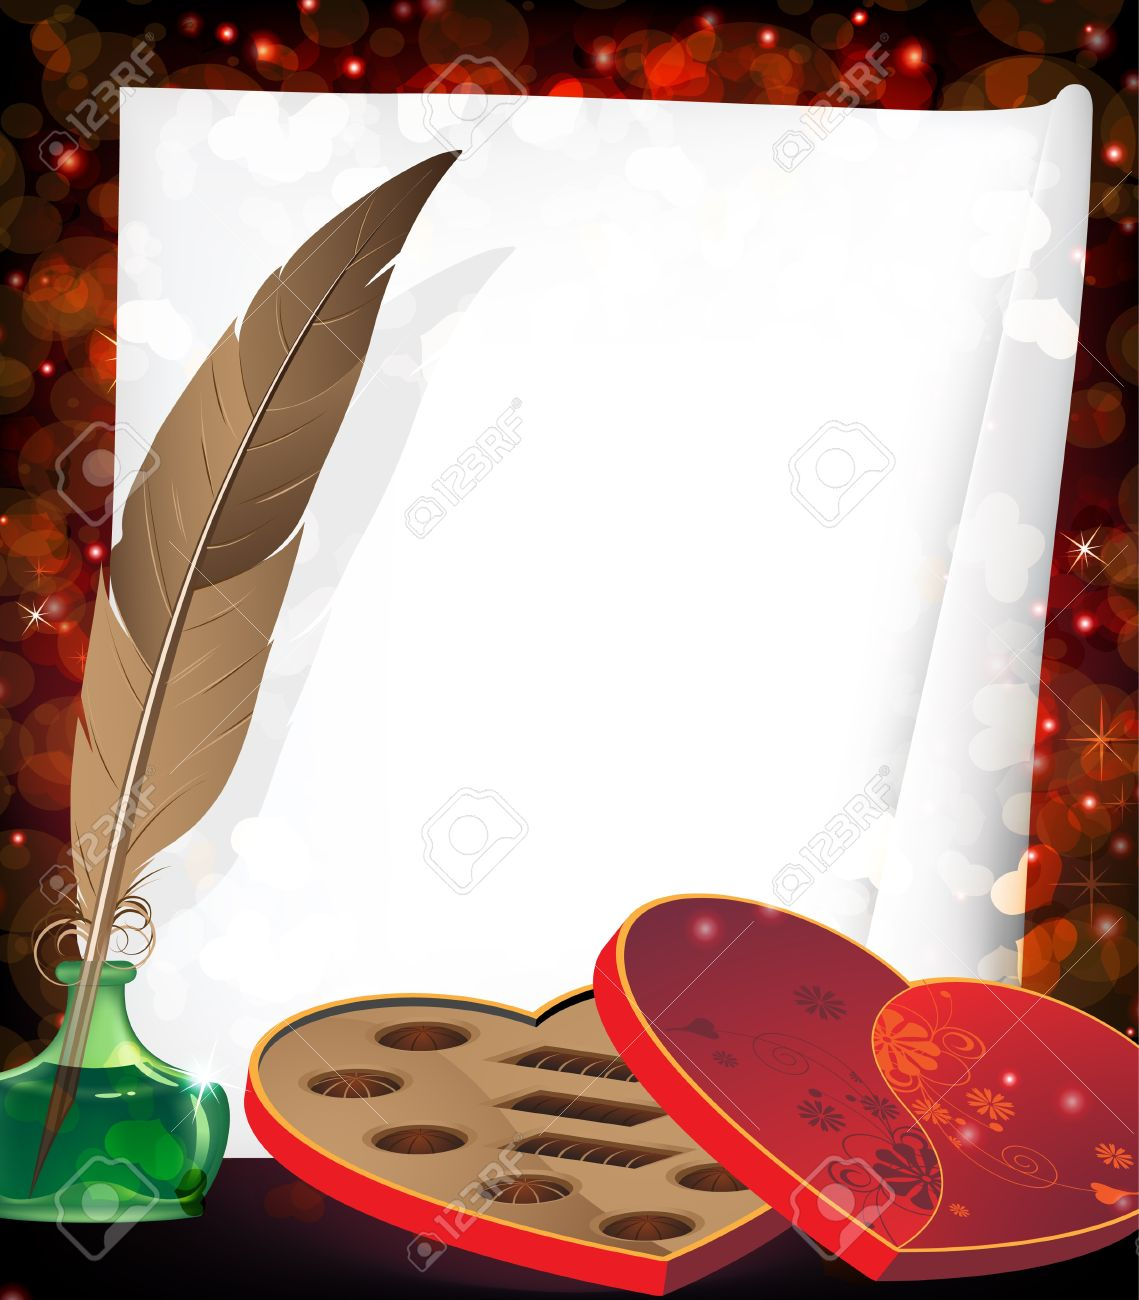 Box of chocolates, inkpot with feather and sheet of paper on a red background with transparent hearts Stock Vector - 17529225